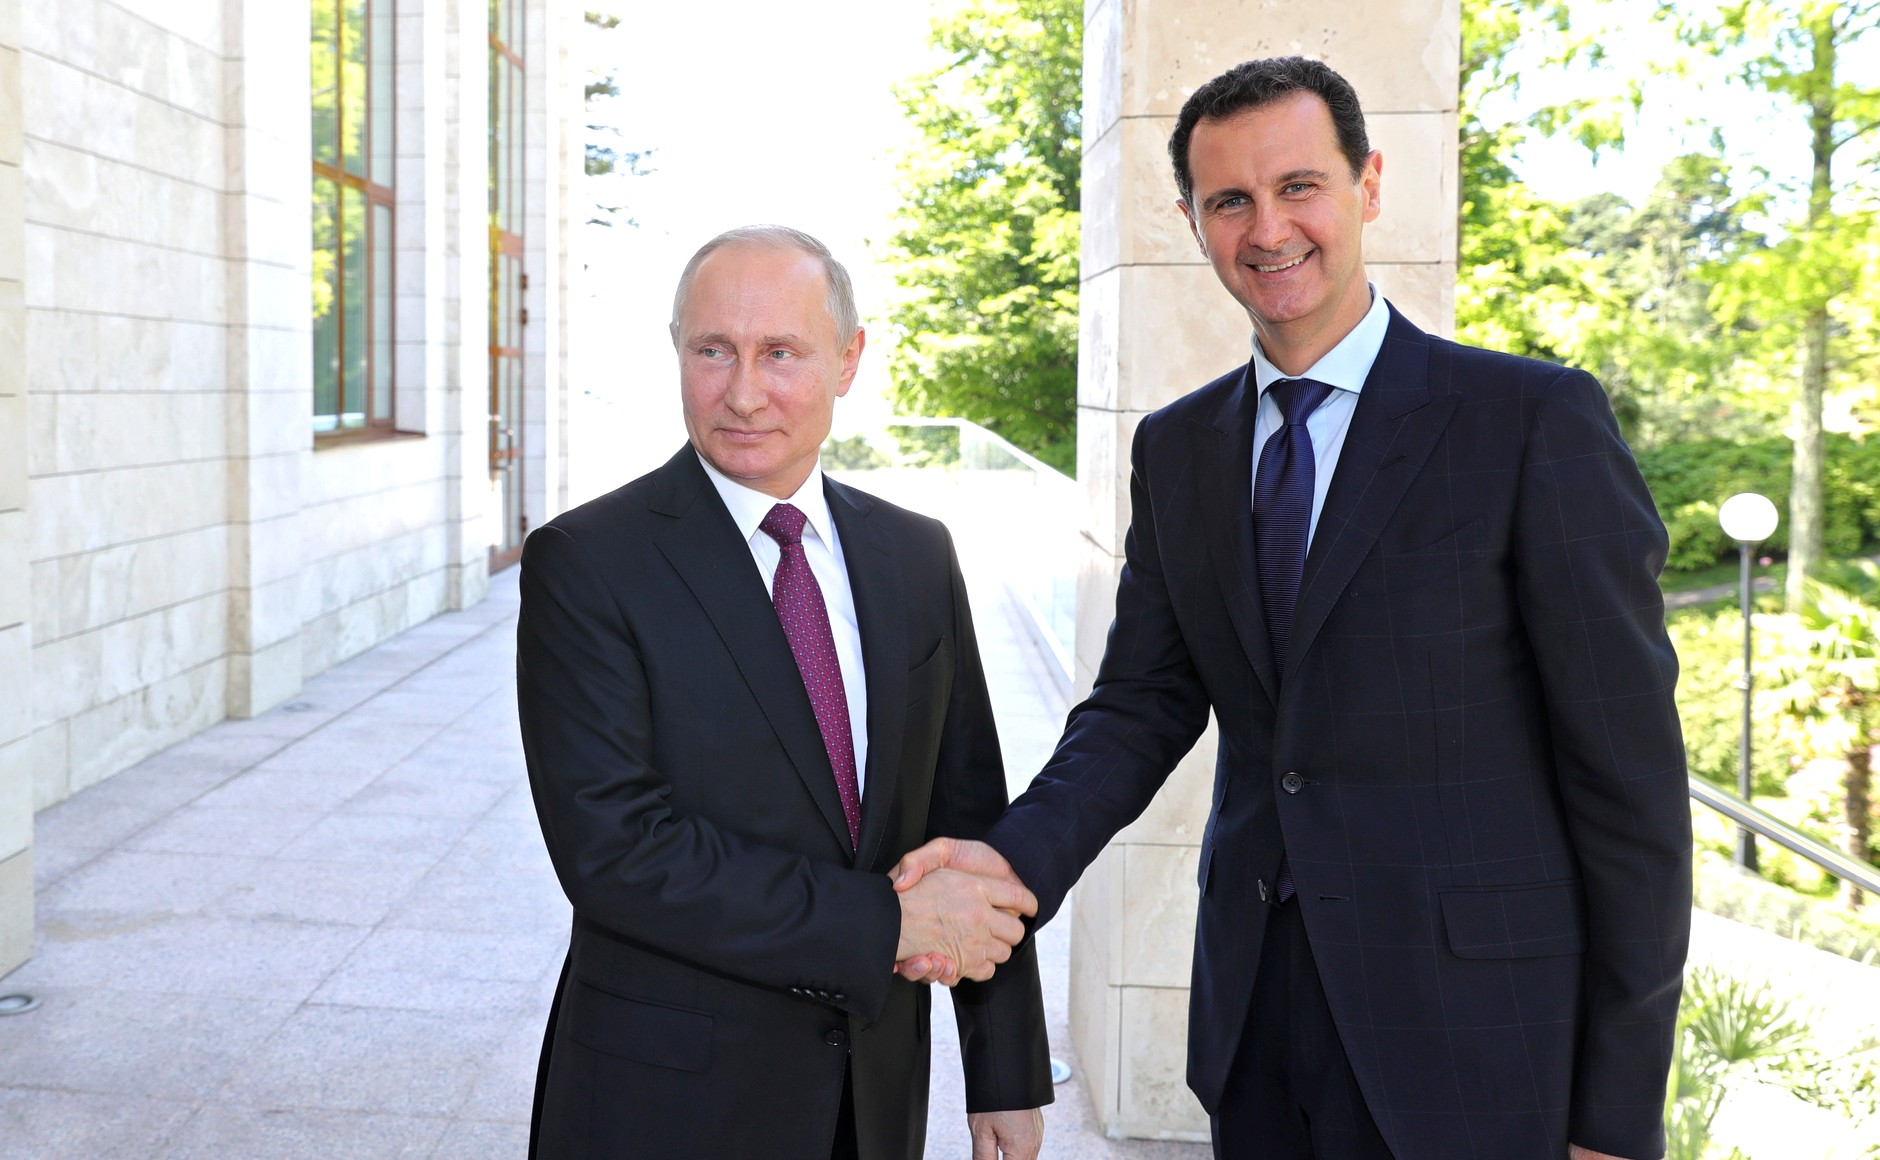 Assad meets Putin in Russia's Sochi